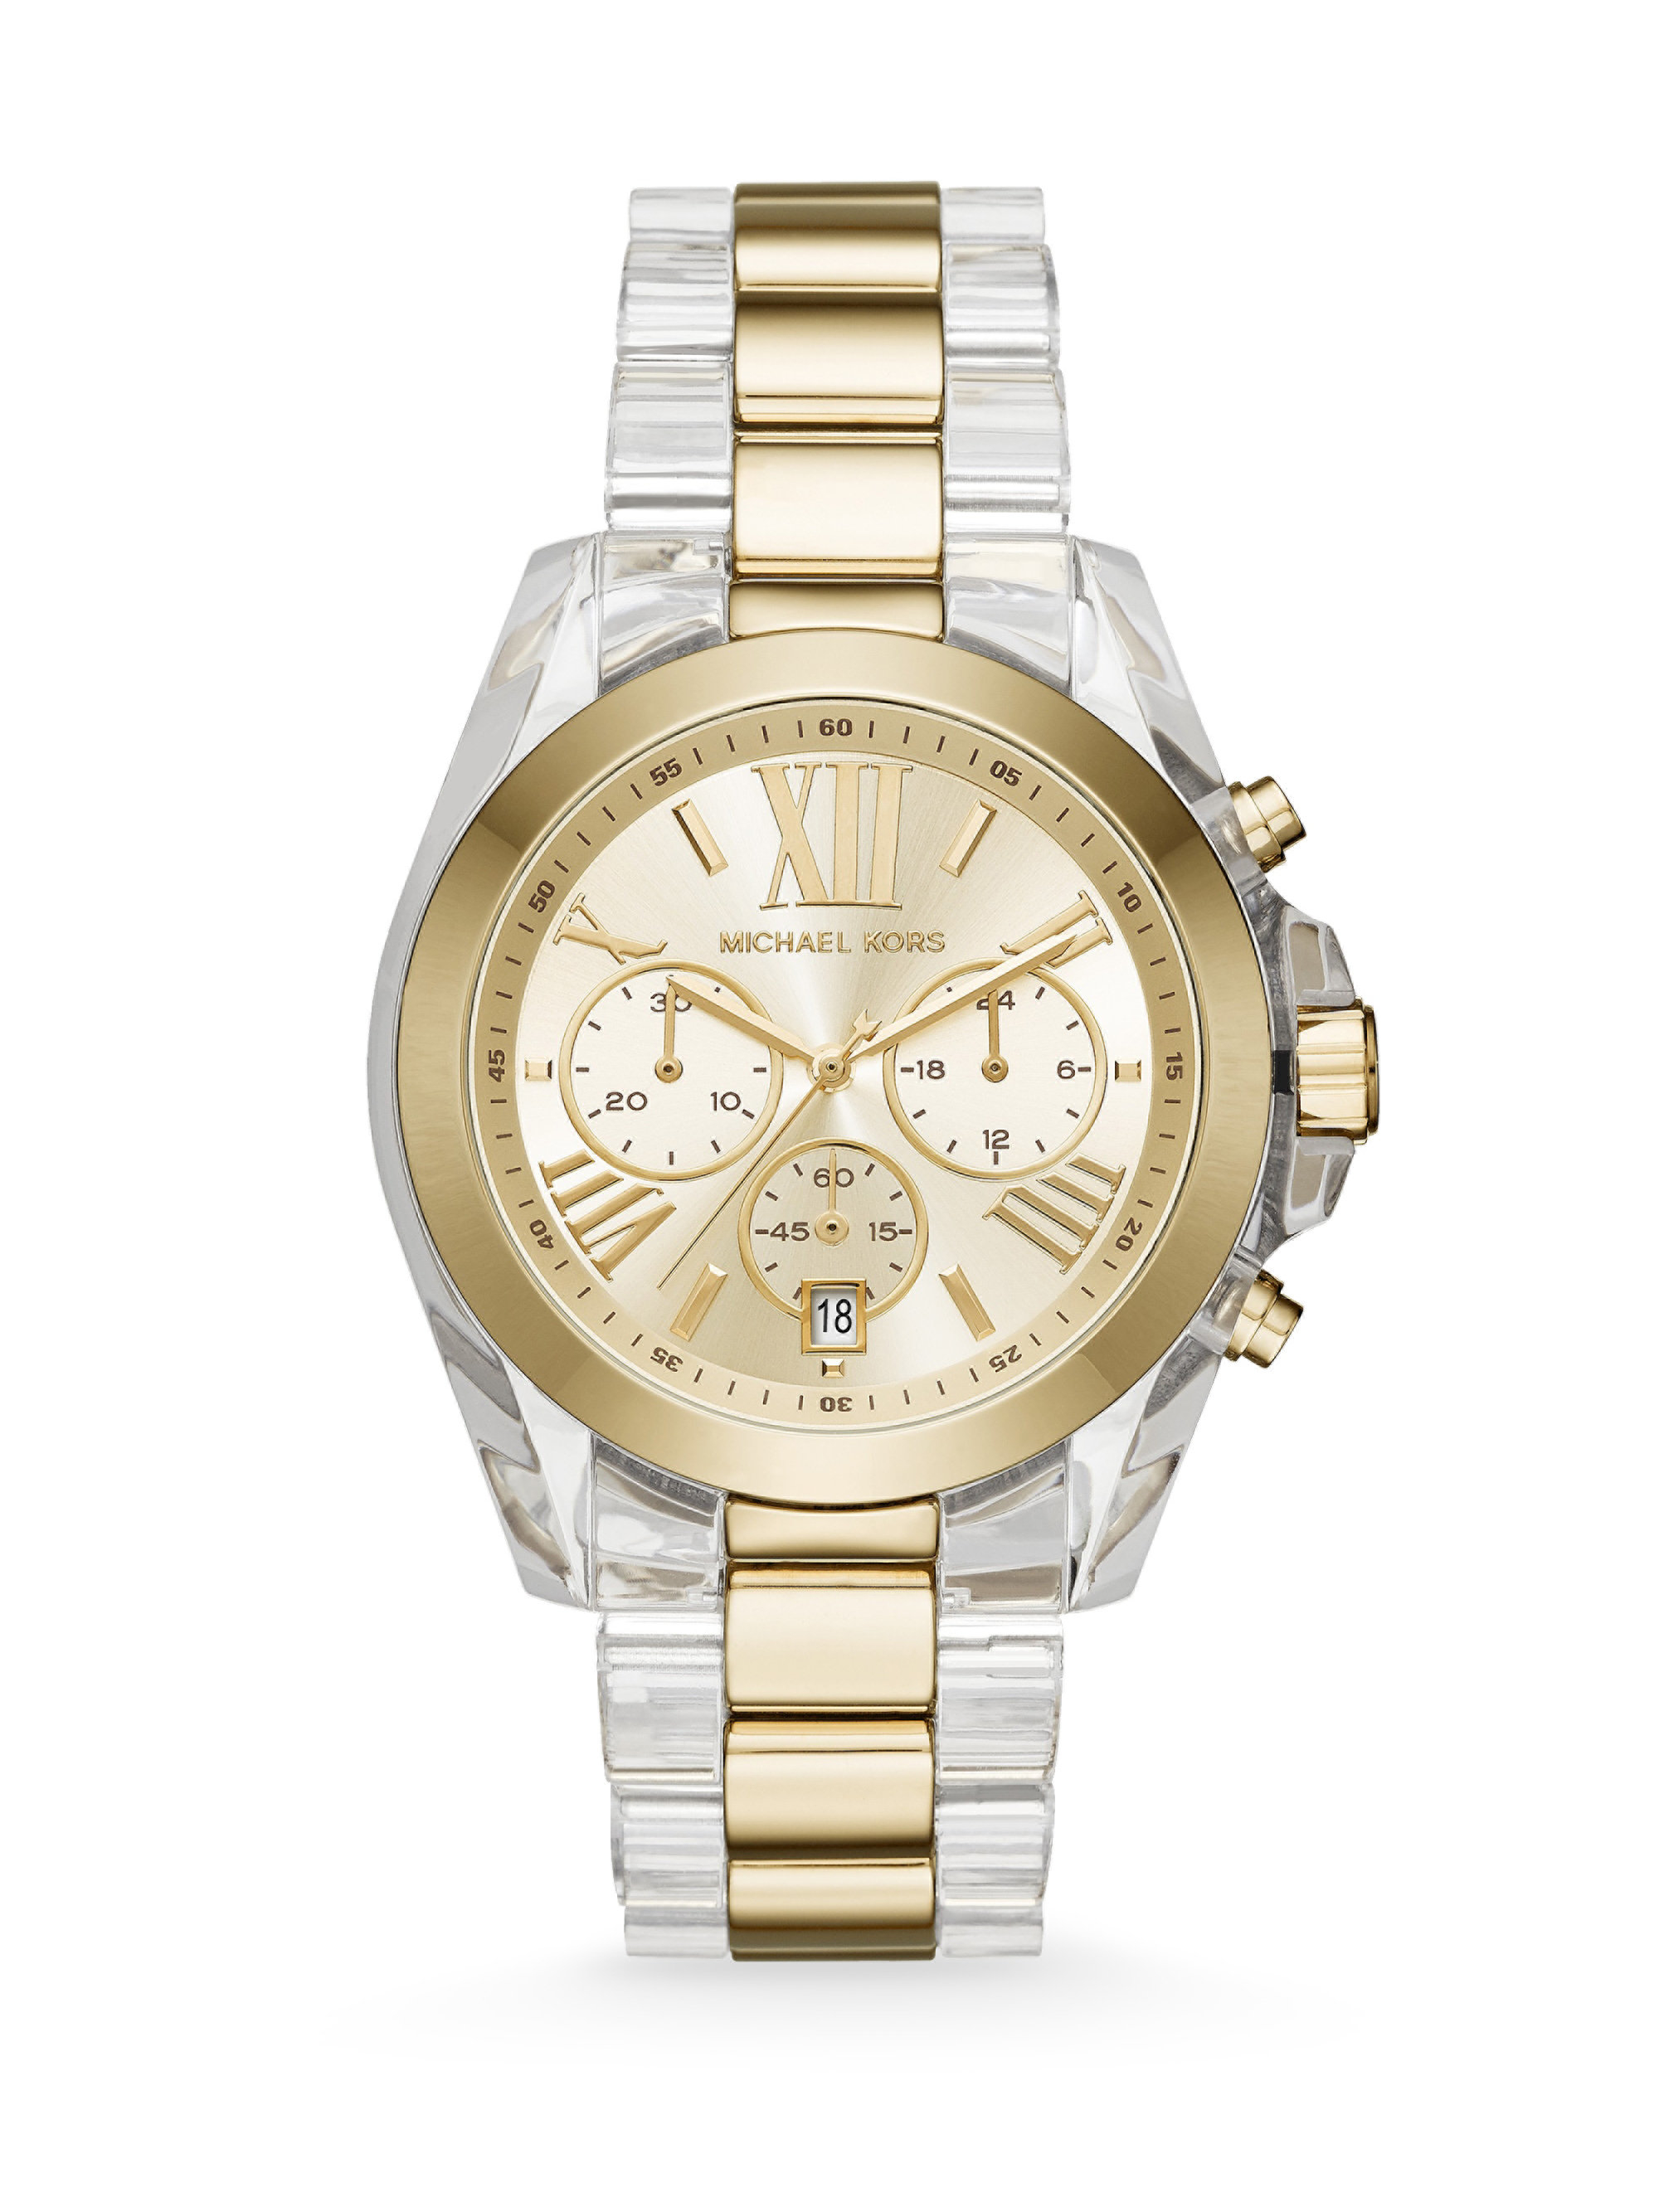 Gallery Previously Sold At Saks Fifth Avenue Men S Michael Kors Chronograph